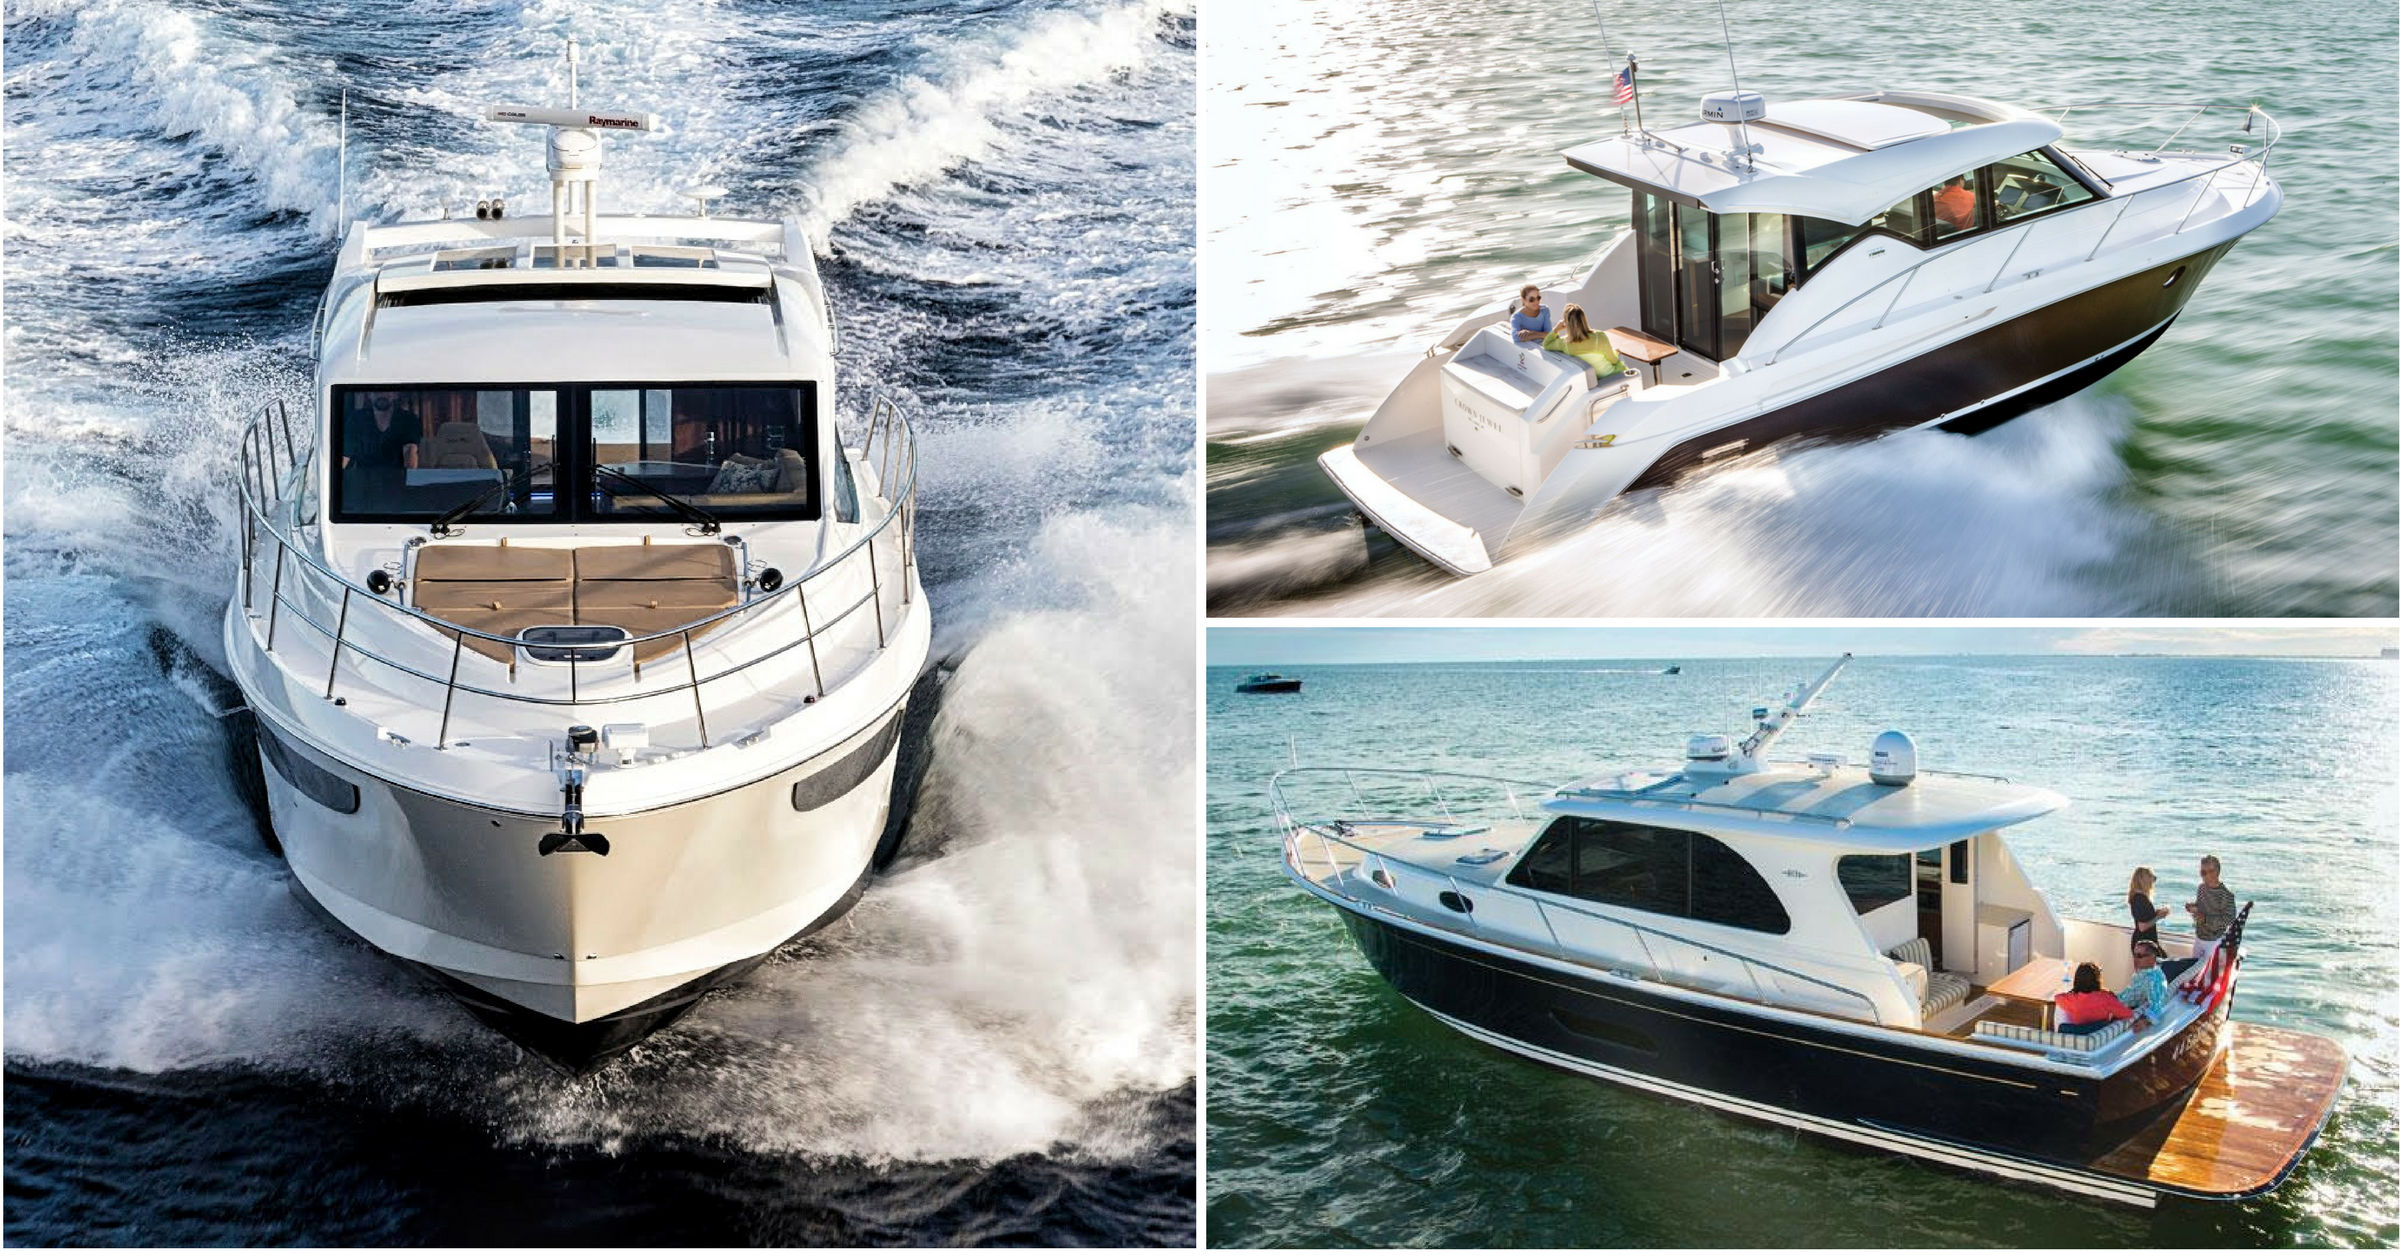 Top 5 Most Popular Powerboat Makes from Dockwa's Boaters[Infographic]